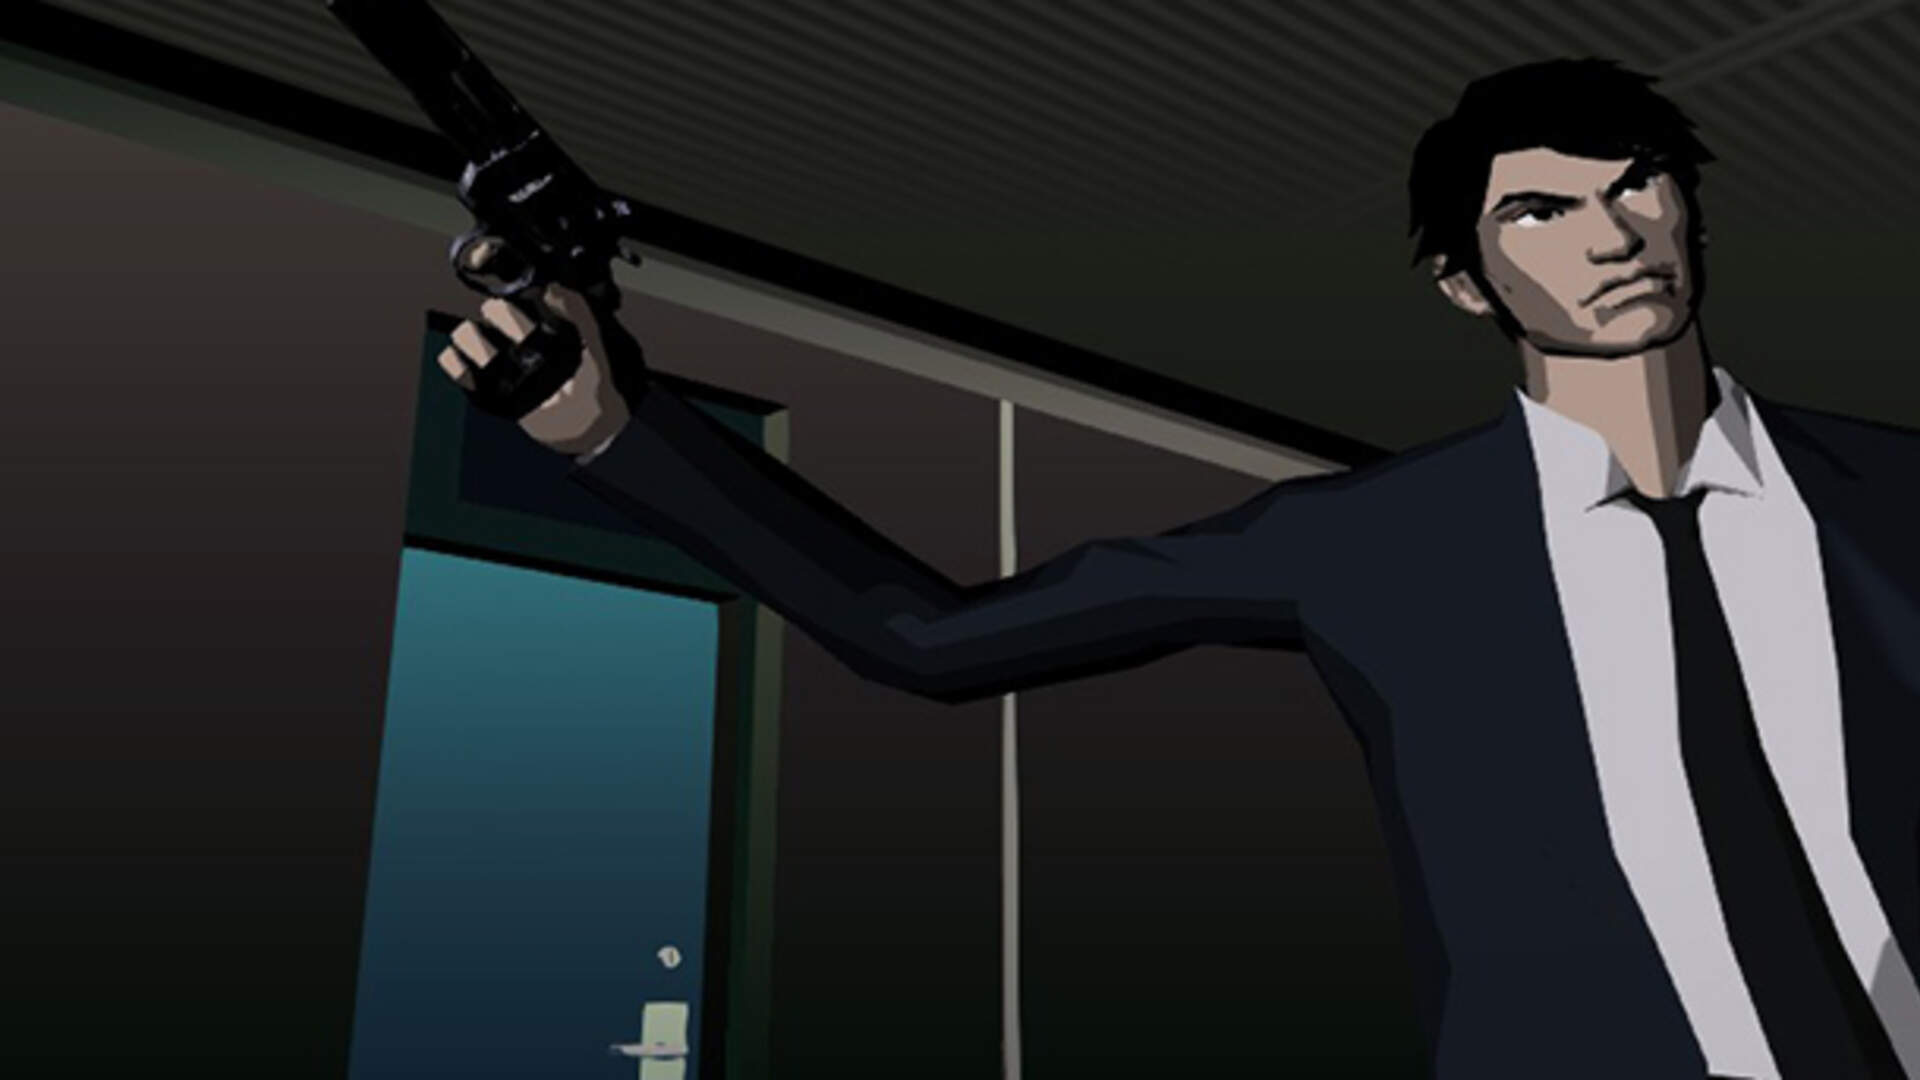 Suda51 Revisits Killer 7 To Talk About Cut Content, A Potential Sequel, and His Favorite Character